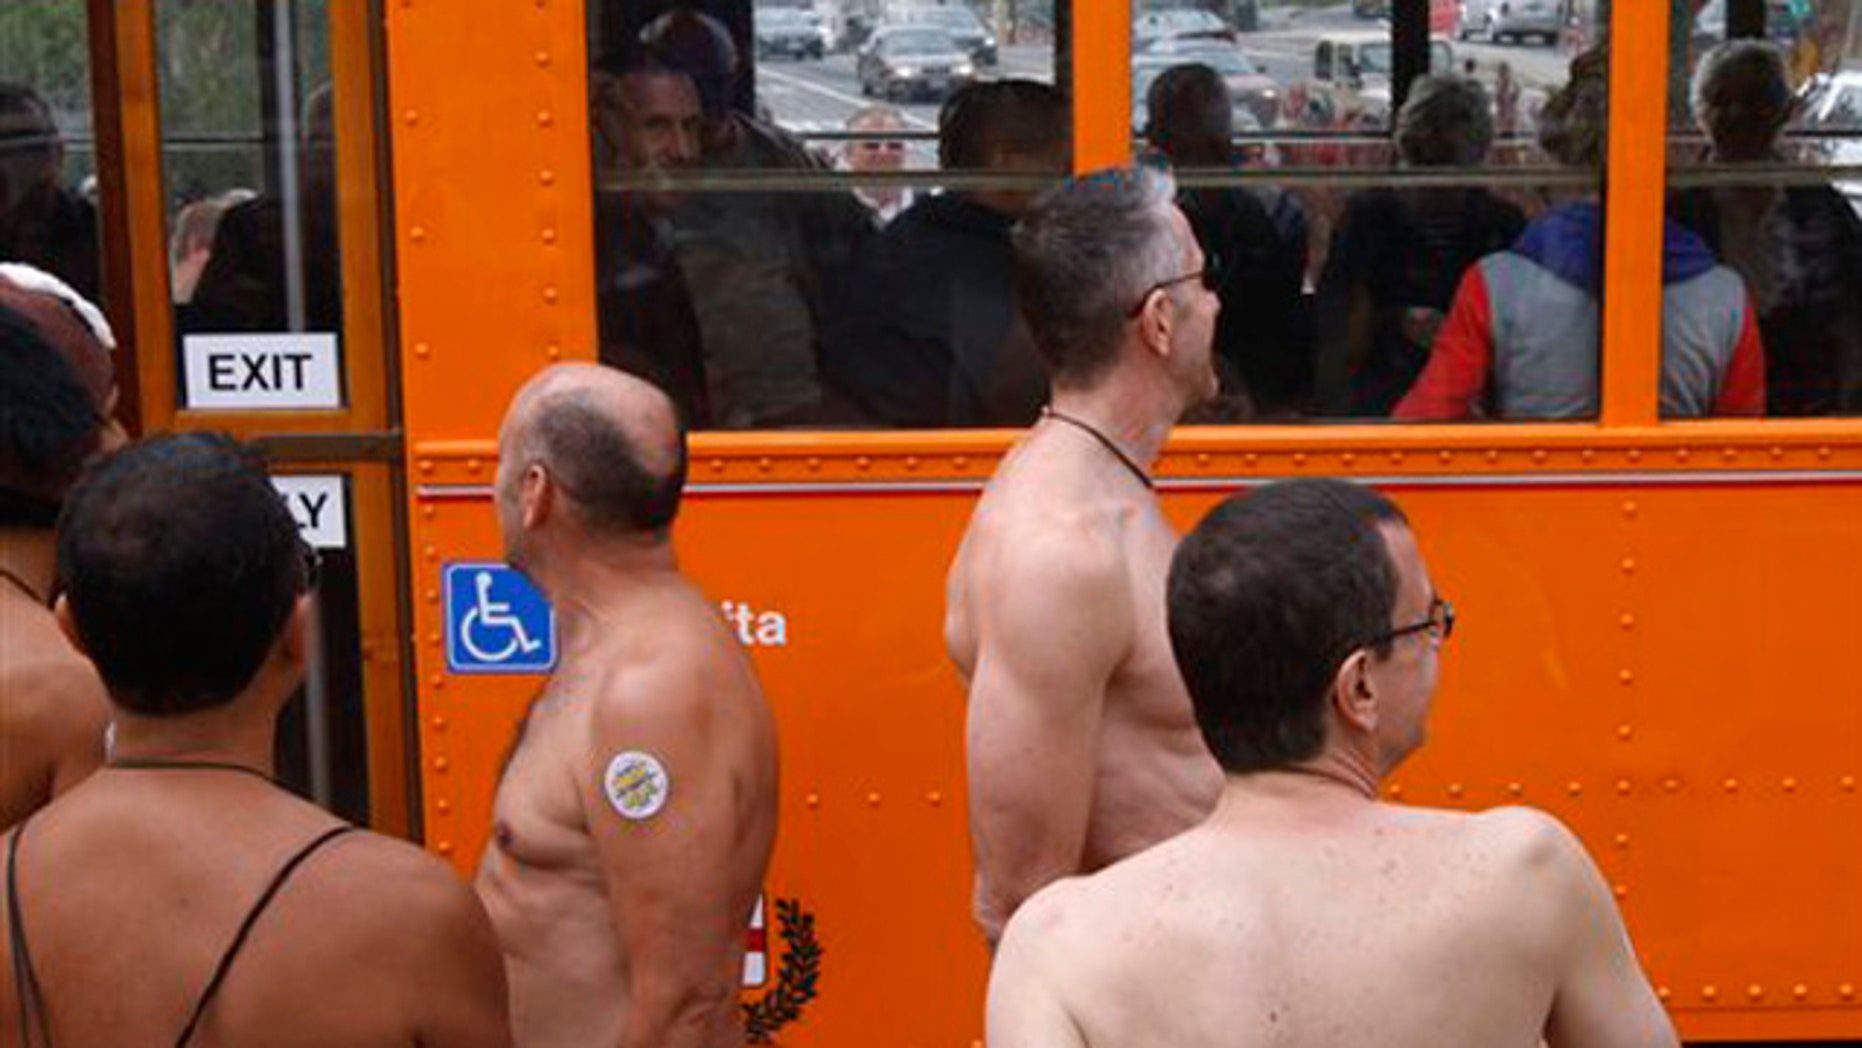 A Muni F-Market line streetcar rolls past nudists at Castro and 17th streets, Saturday, Sept. 24, 2011, in San Francisco. Originally organized to celebrate the Folsom Street Fair, the nude-in gained popularity after Supervisor Scott Wiener's proposal to force nudists to sit on handkerchiefs or towels in public.